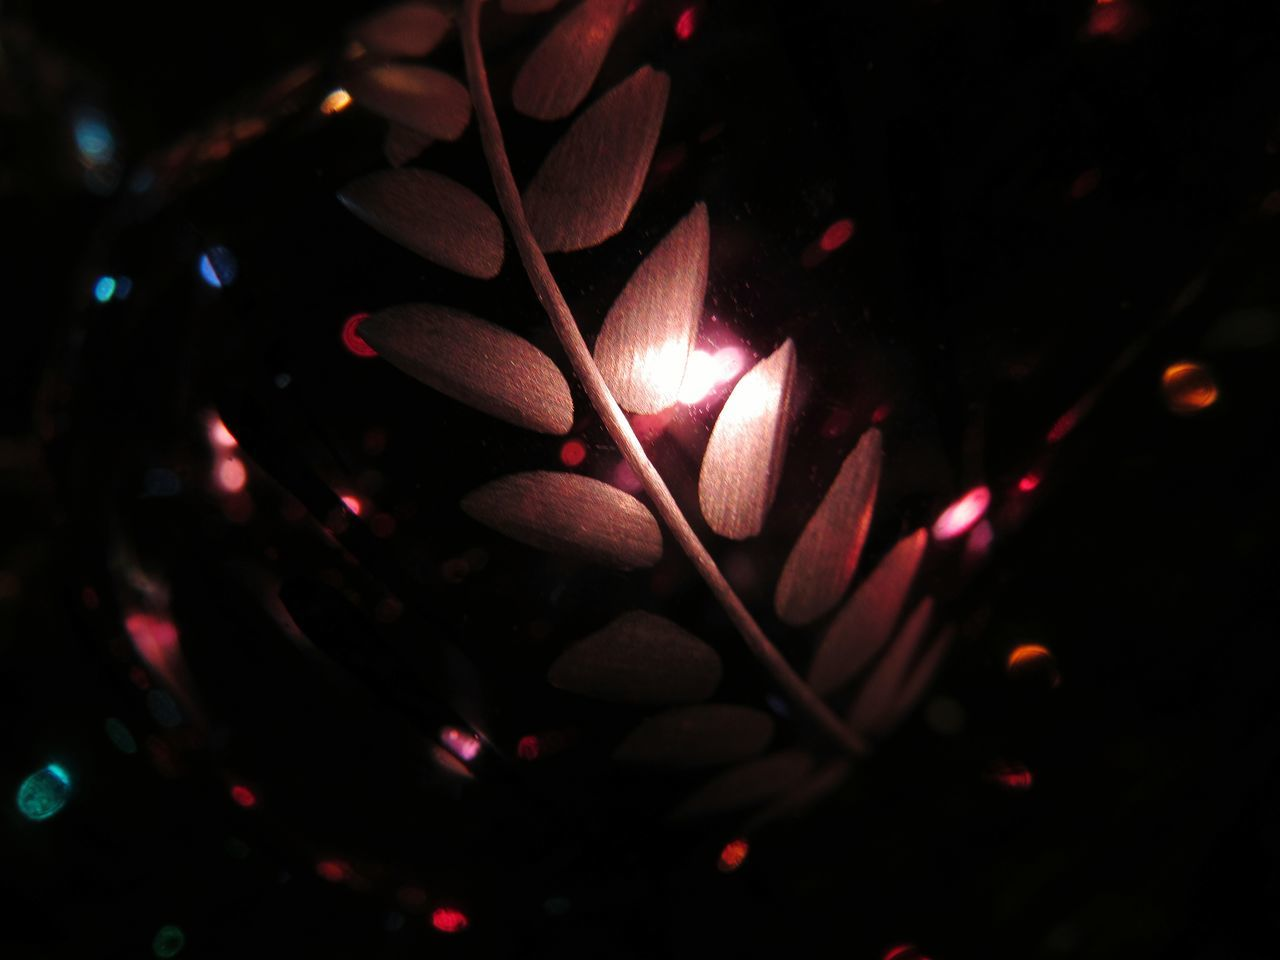 Christmastime Christmas Tree Christmas Lights Christmas Decorations Christmas Time Lights Warmth Glow Etched Glass A Touch Of Colour Wintertime EyeEm Gallery Best Christmas Lights